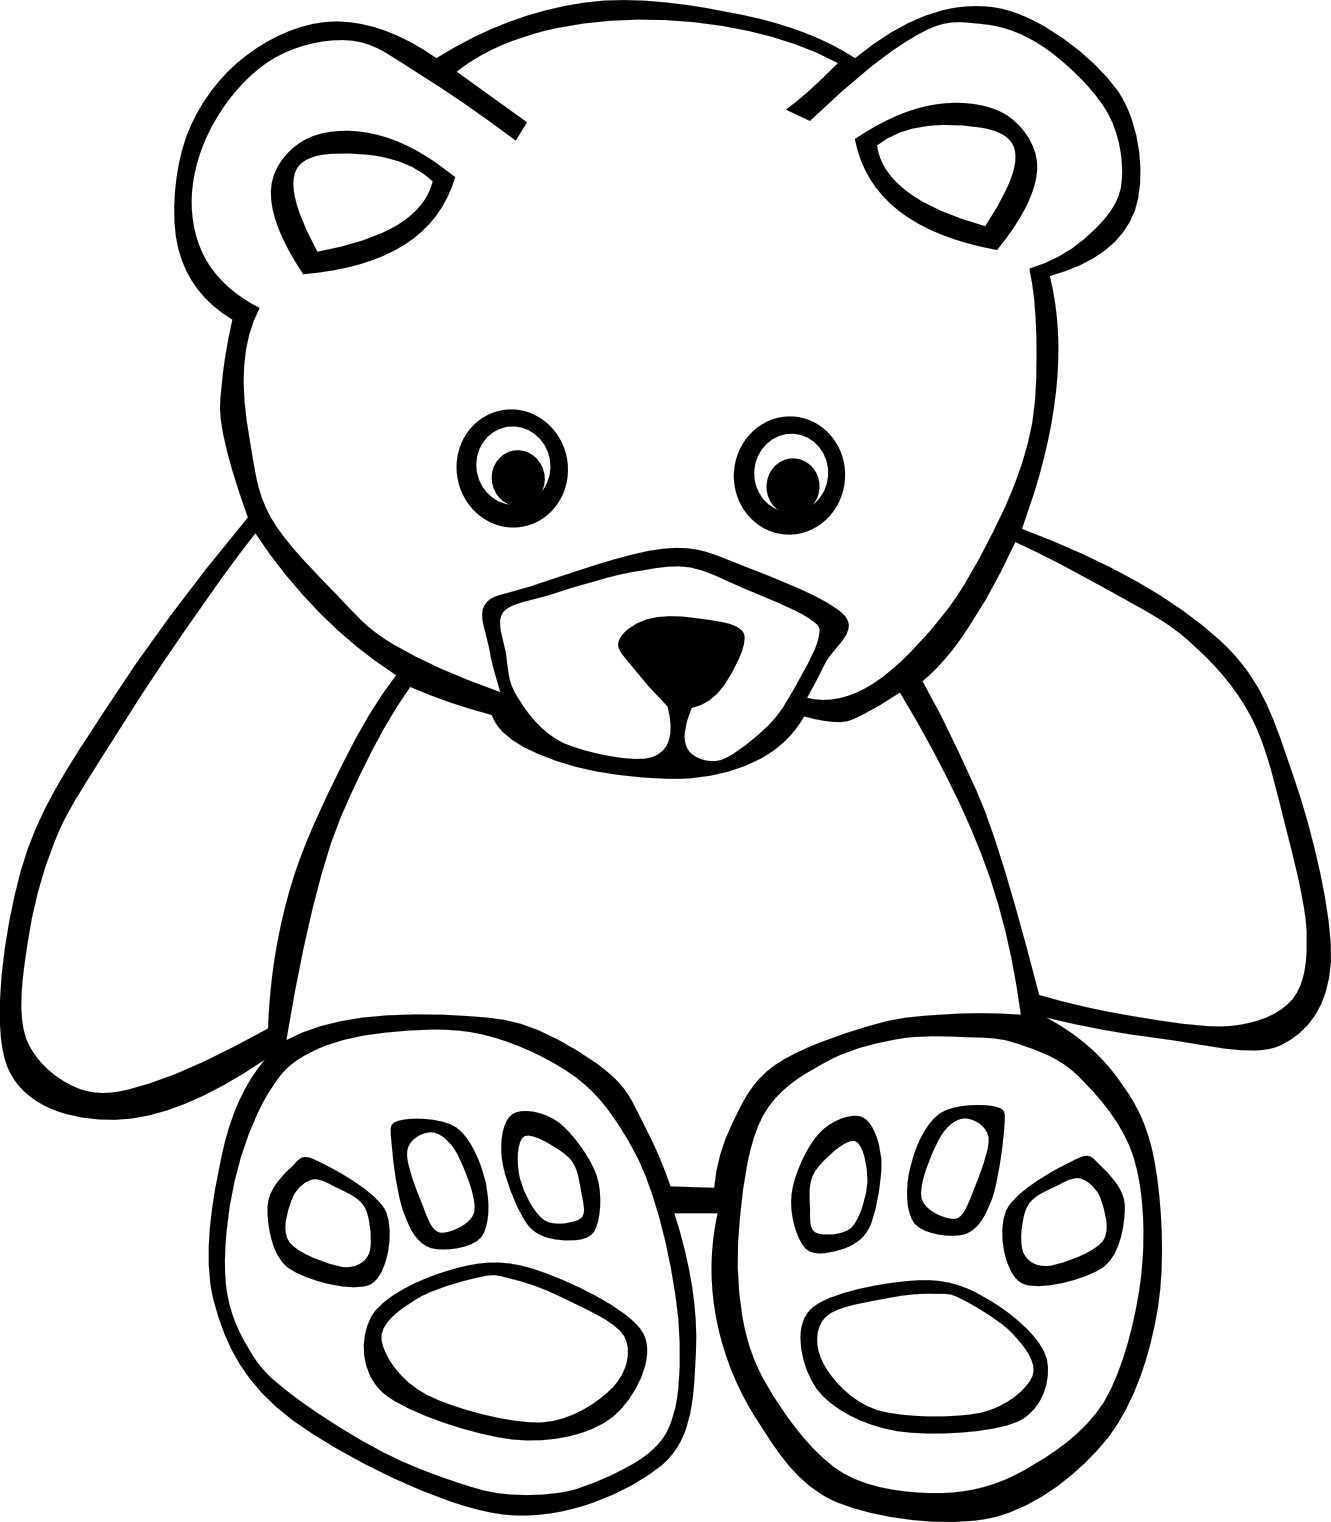 Free Bear Hug Clipart, Download Free Clip Art, Free Clip